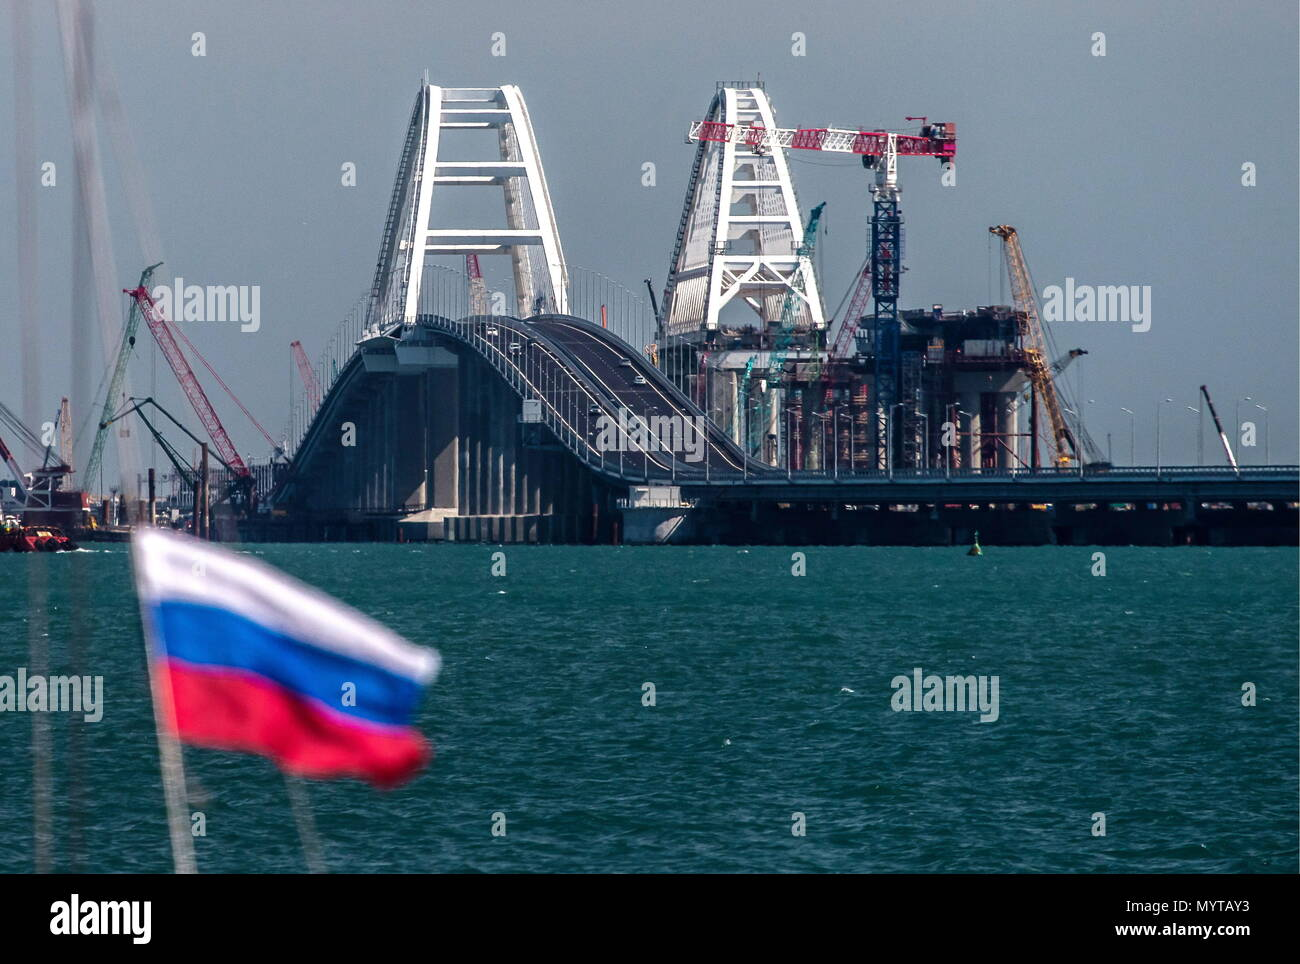 In 2018 Kerch Bridge to the Crimea will be erected 32